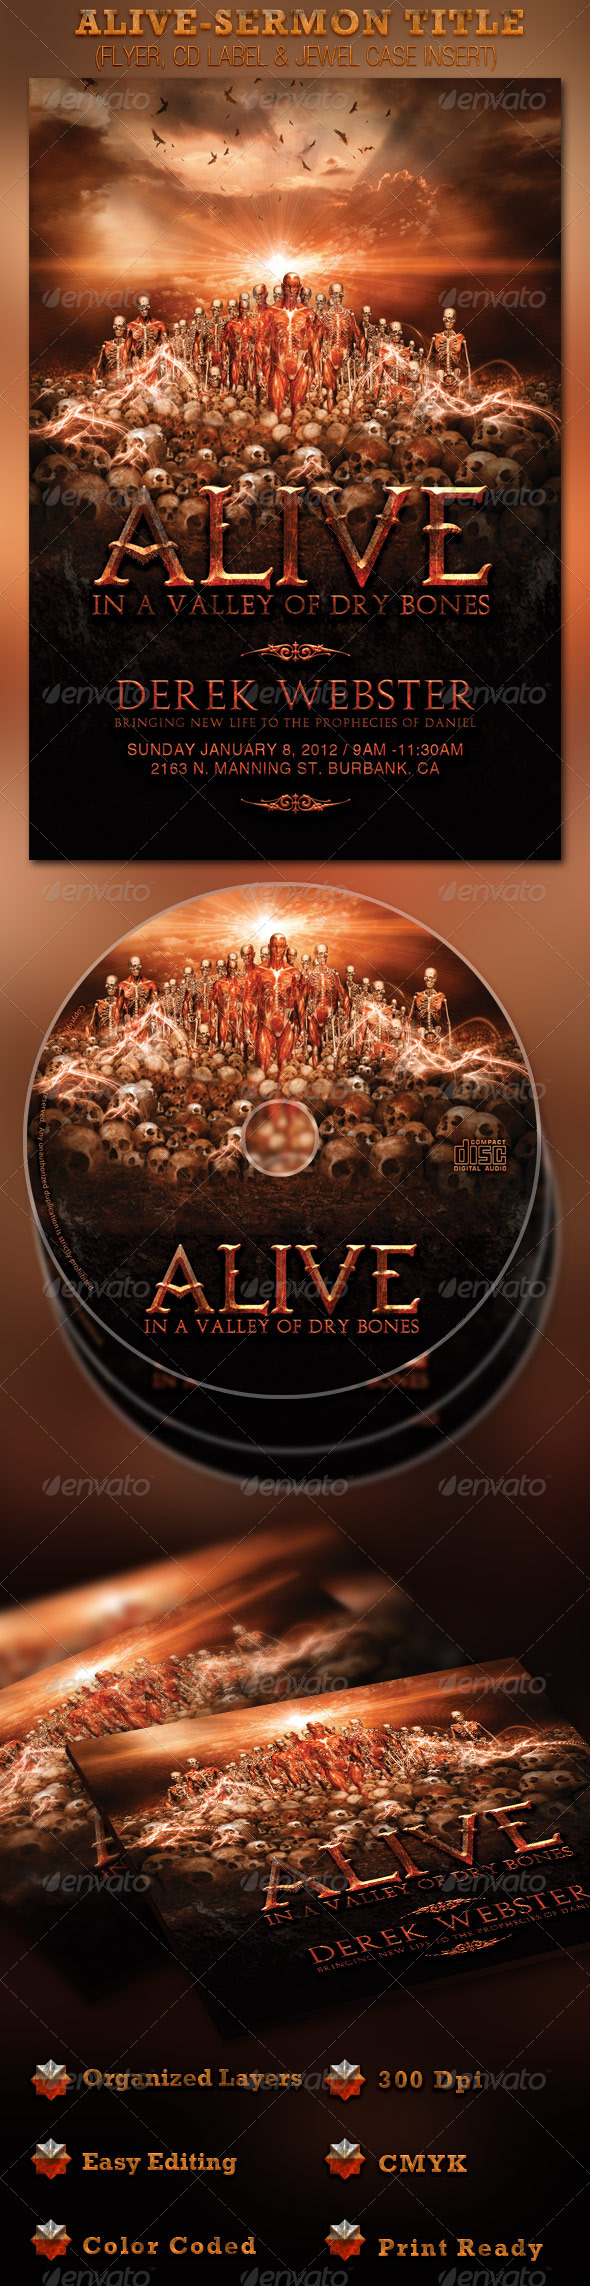 GraphicRiver Alive in a Valley of Dry Bones Flyer and CD 1230711